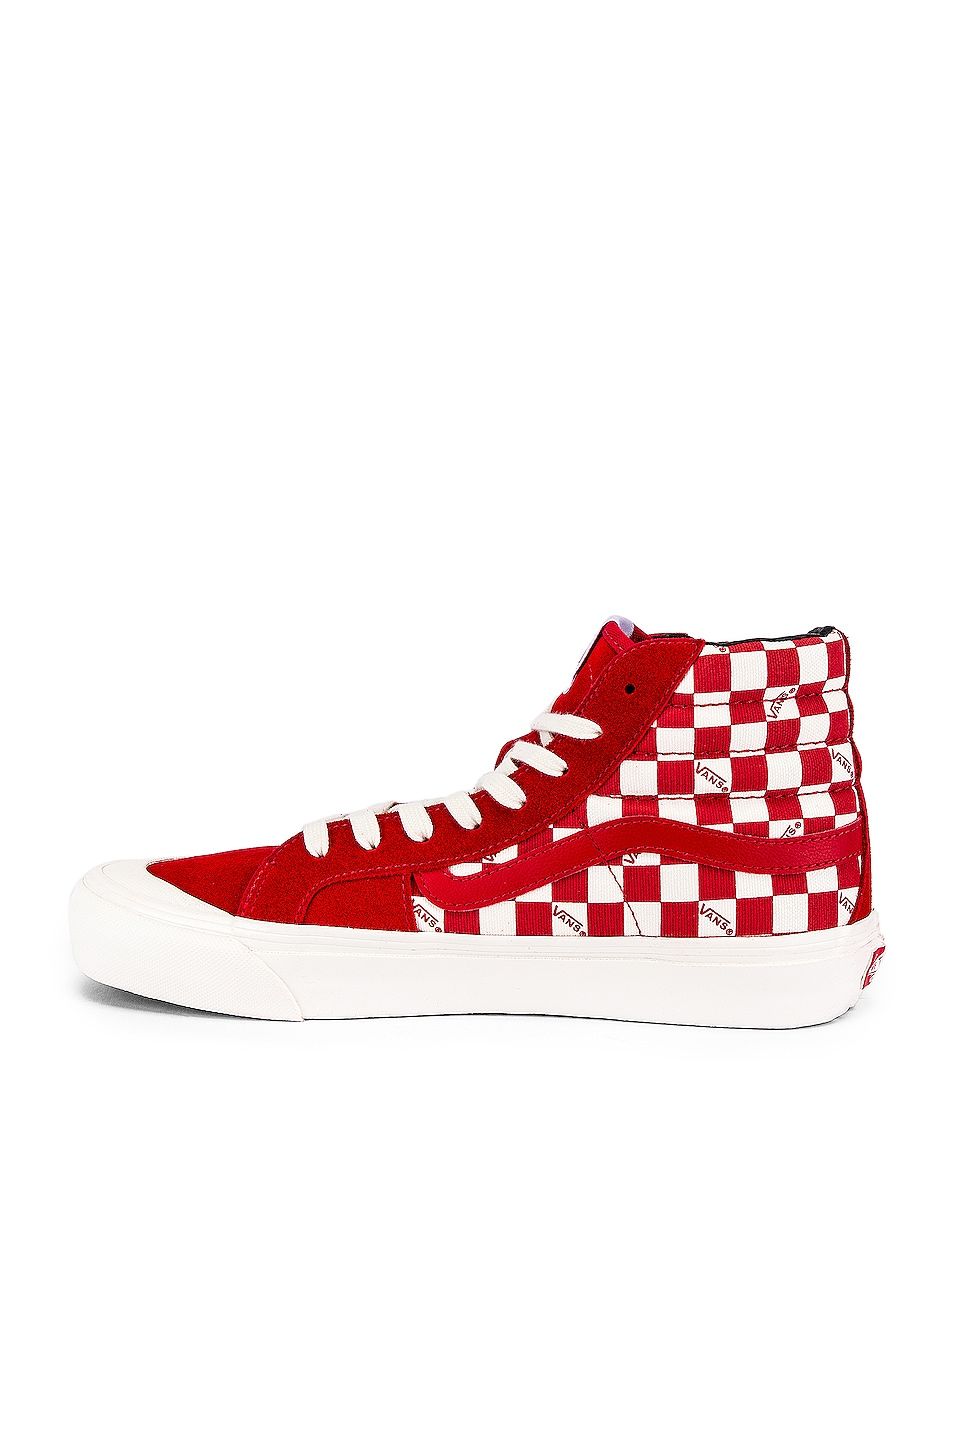 Image 5 of Vans Vault OG Style 138 LX in Racing Red & Checkerboard